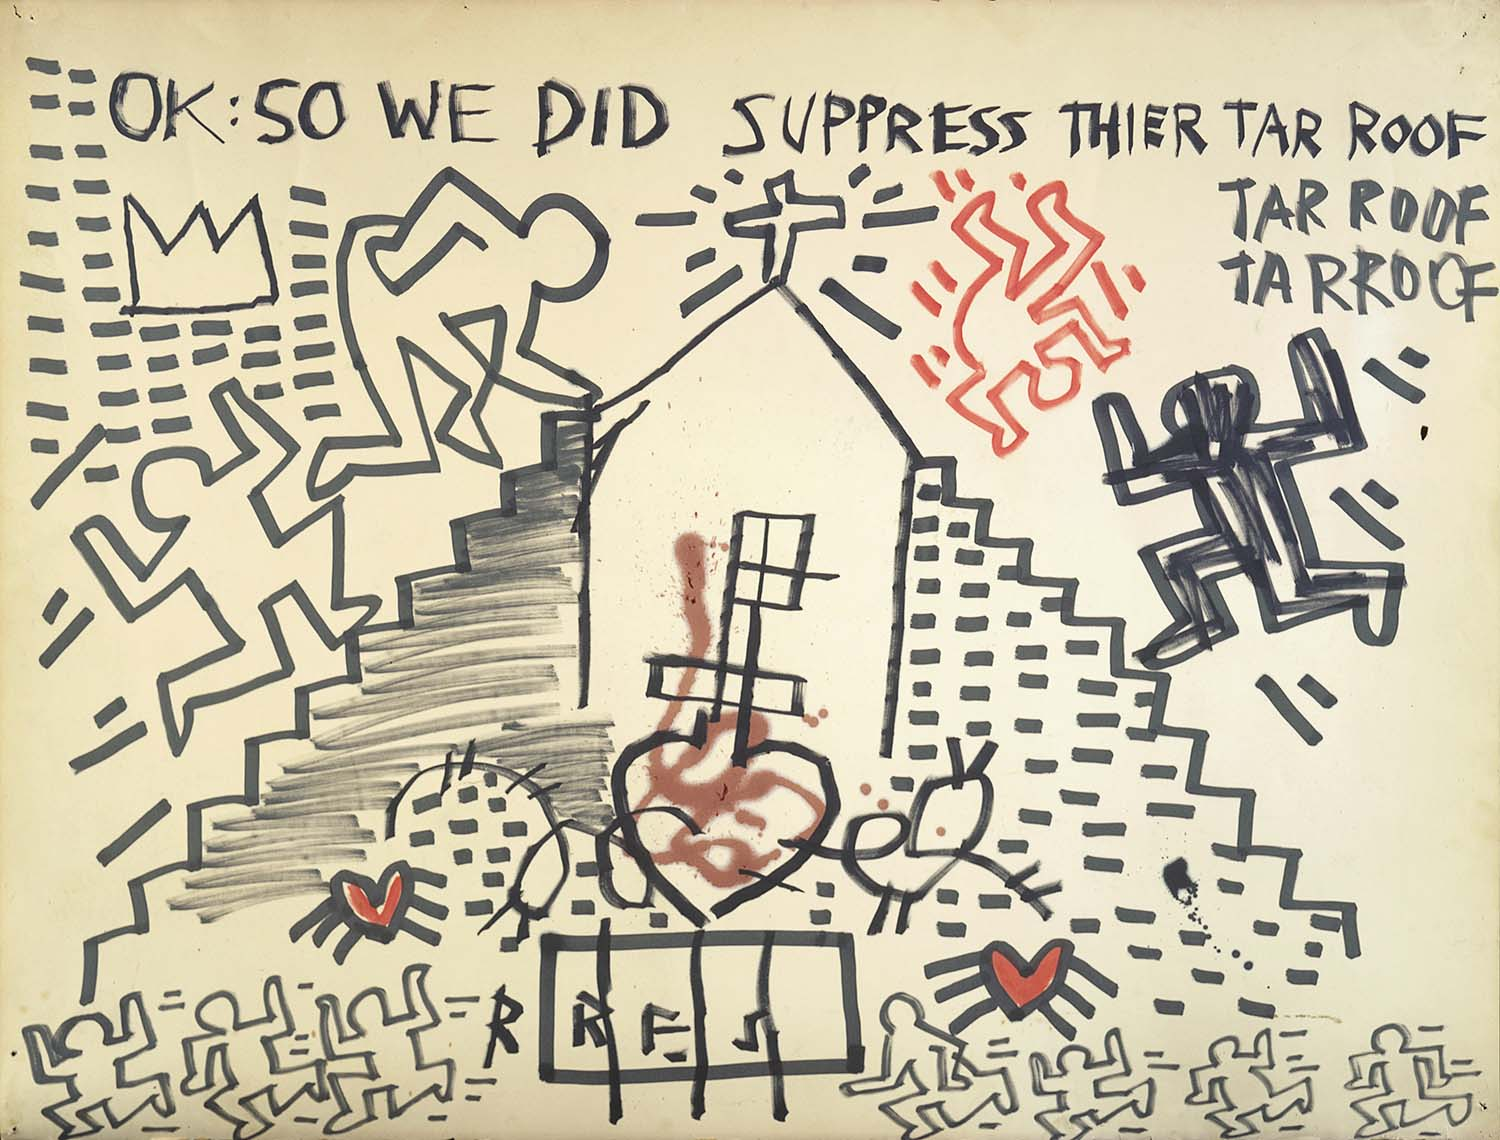 Keith Haring and Jean-Michel Basquiat, Untitled 1980